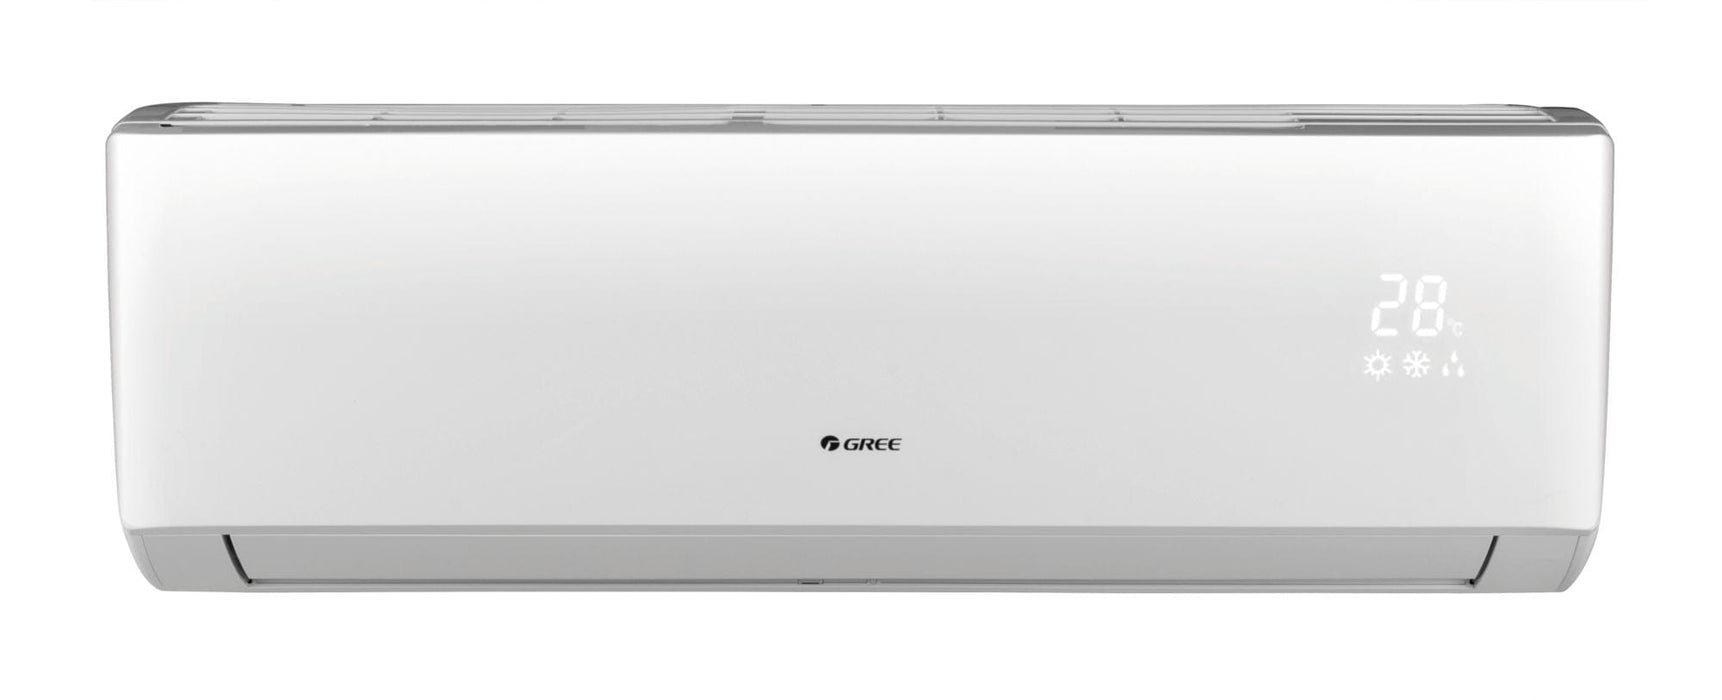 Gree 12,000 BTU 22 SEER VIREO+ Wall Mount Ductless Mini Split Indoor Unit 115V